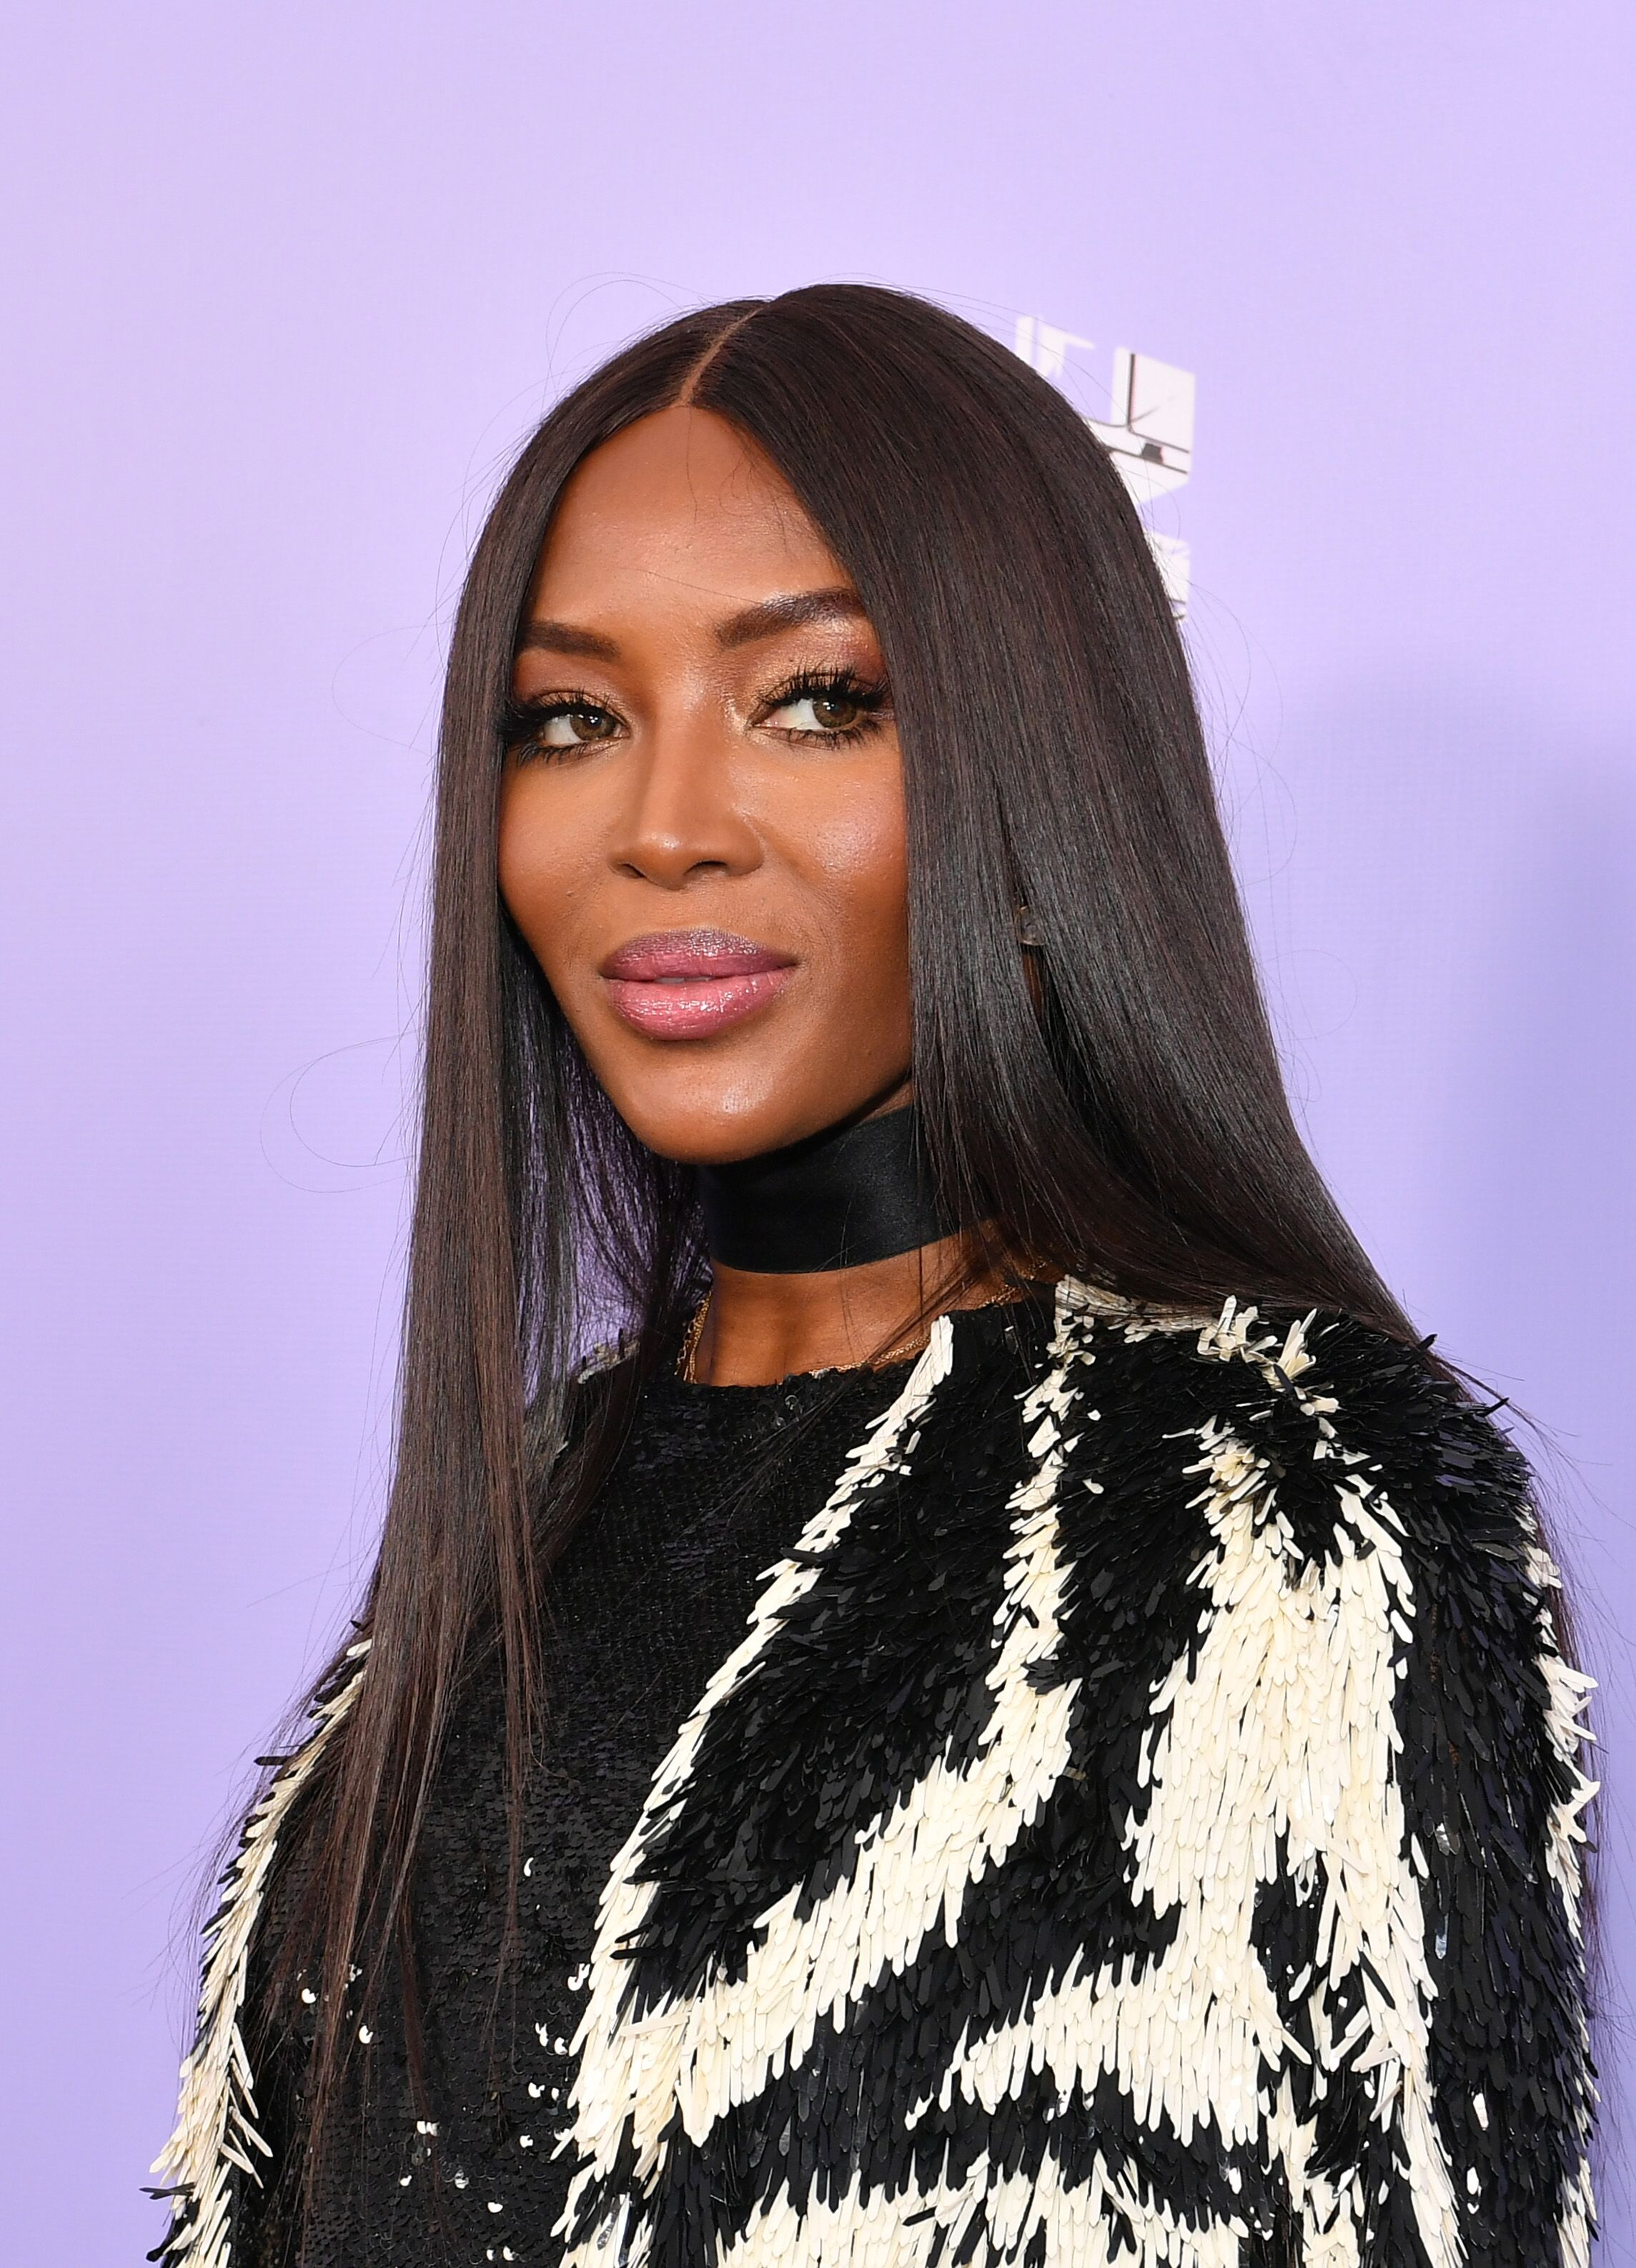 Naomi Campbell attends the 2018 Fragrance Foundation Awards at Alice Tully Hall at Lincoln Center on June 12, 2018 | Photo: Getty Images